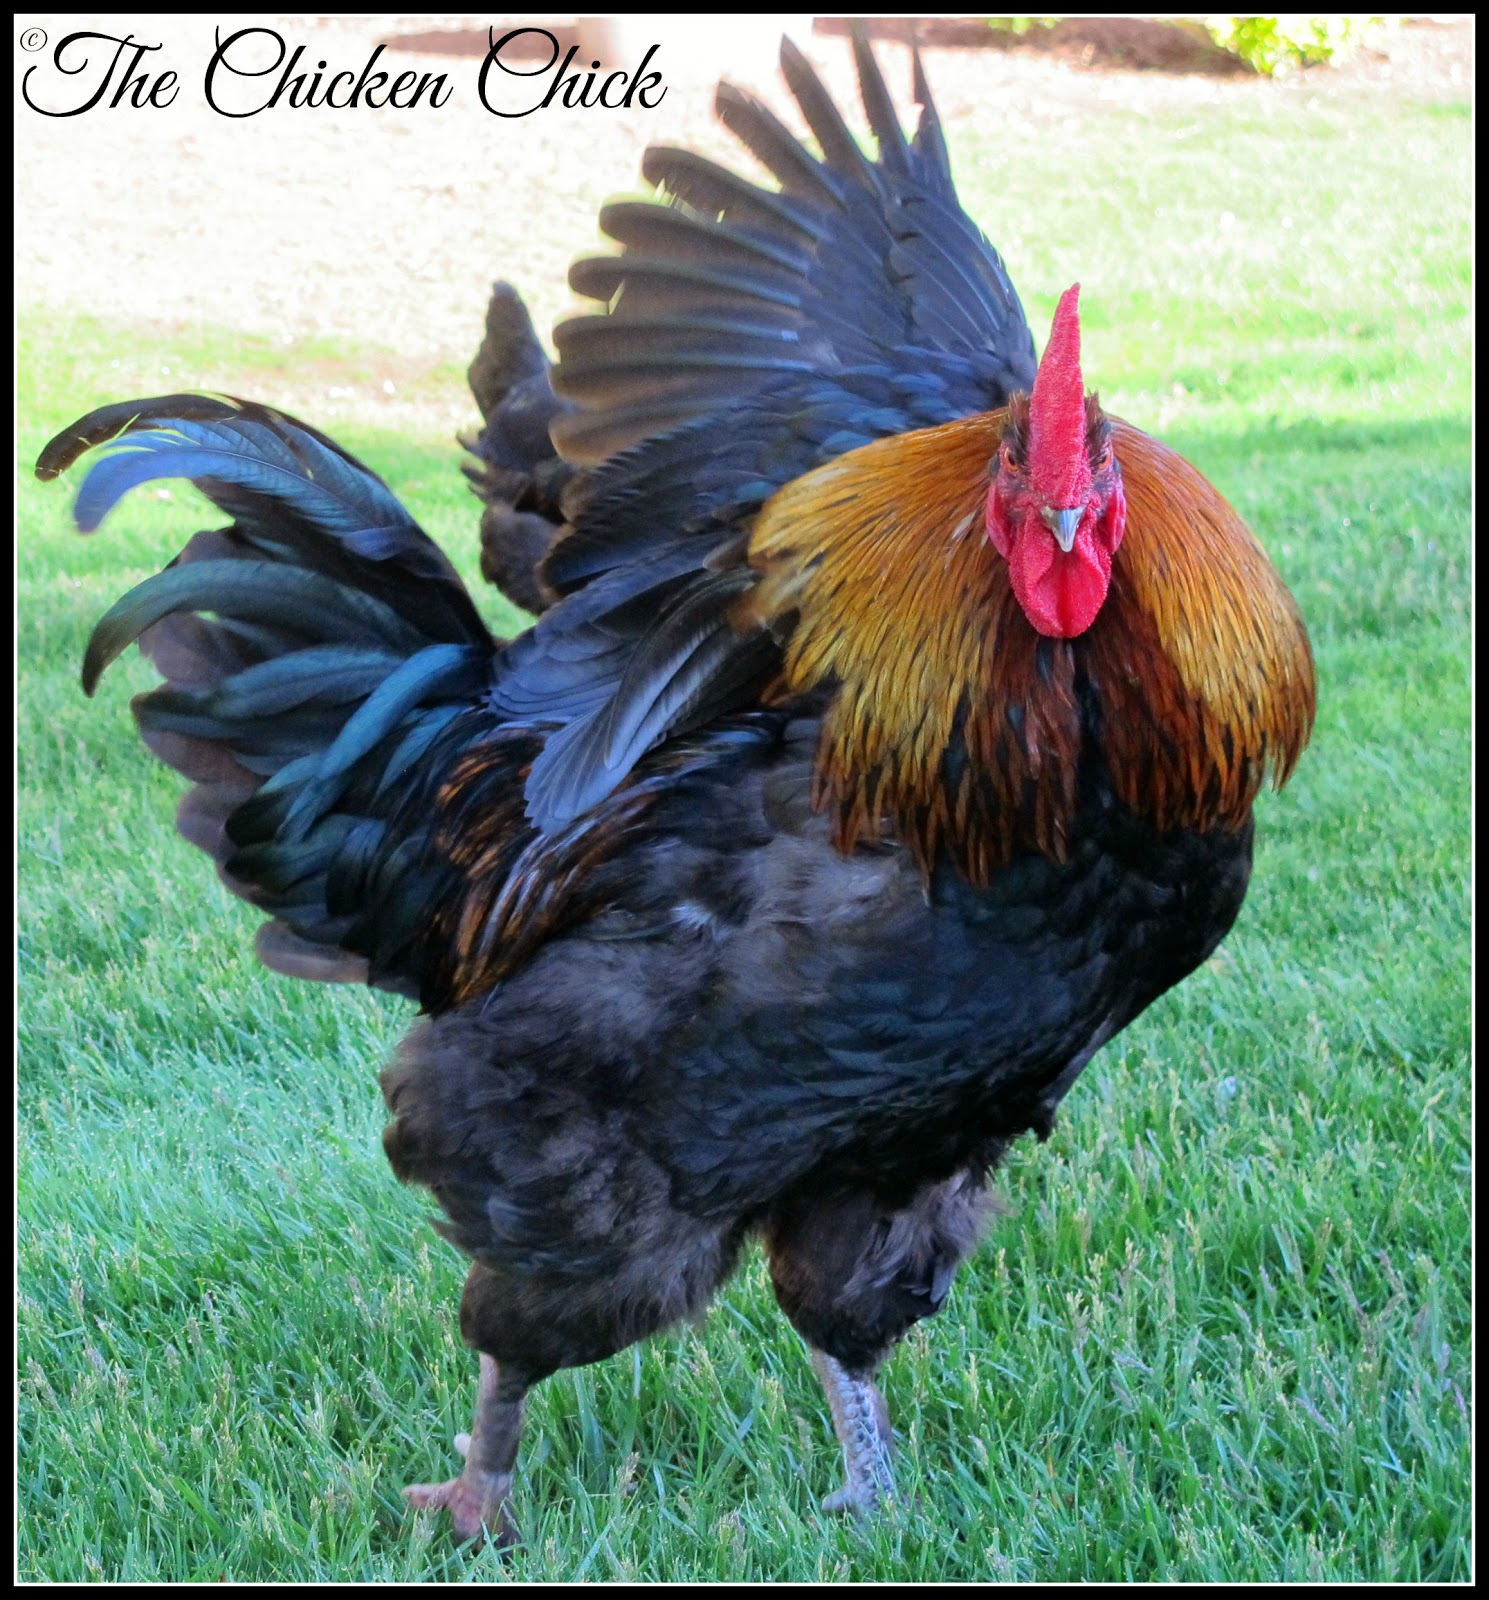 There are no flowers, no dinner and a movie, so how does a rooster impress the chicks? Some roosters don't even bother trying, they'll simply take charge of their mate, but the more romantic types have a few go-to moves they rely upon to dazzle the ladies